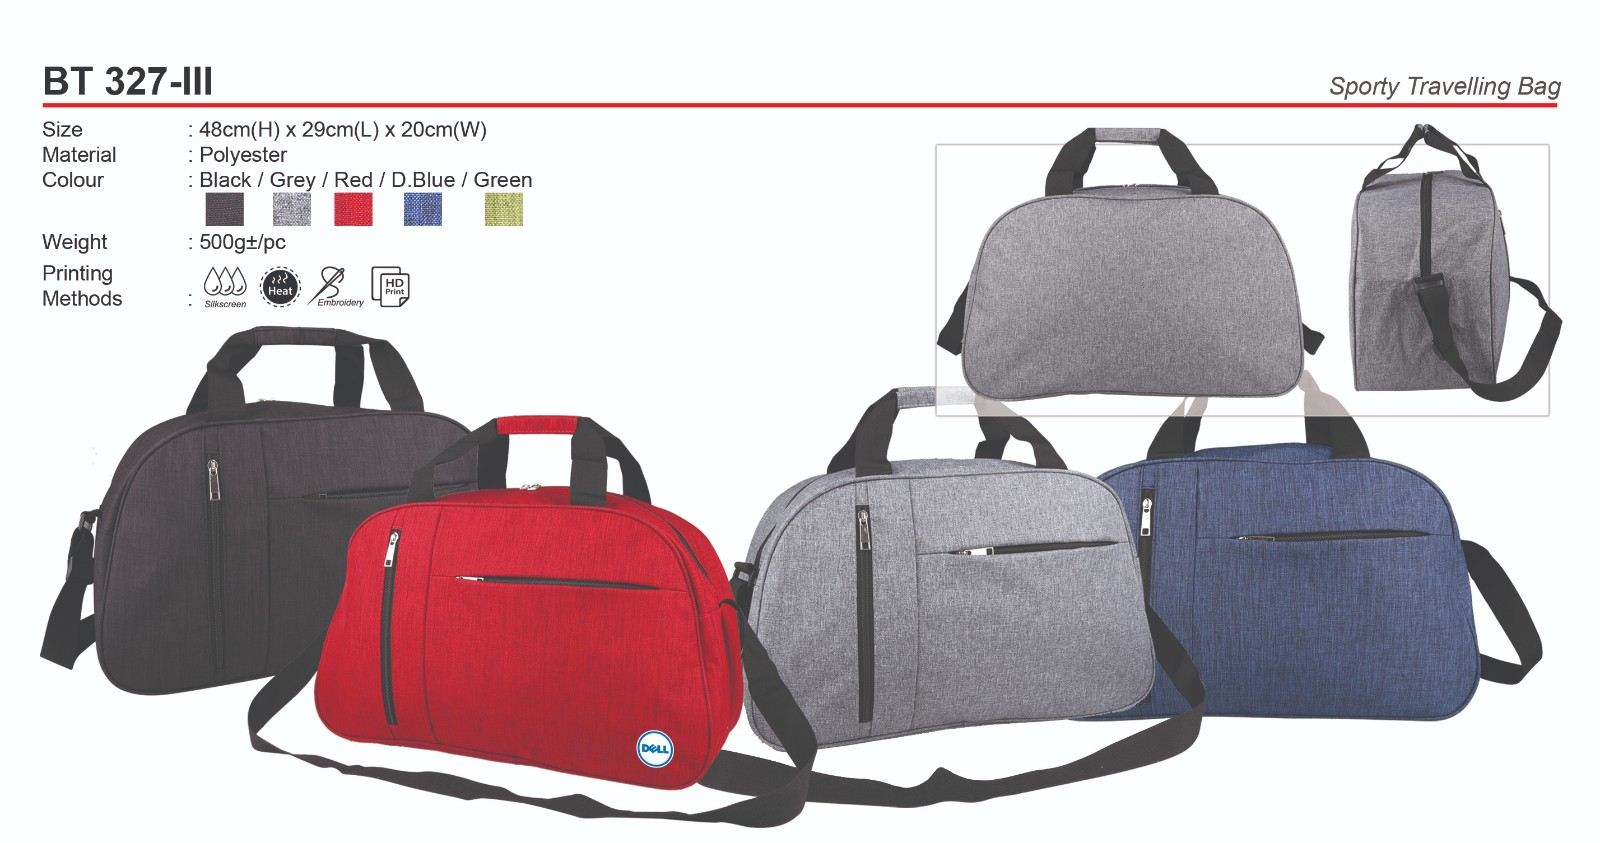 BT327-III Sporty Travelling Bag